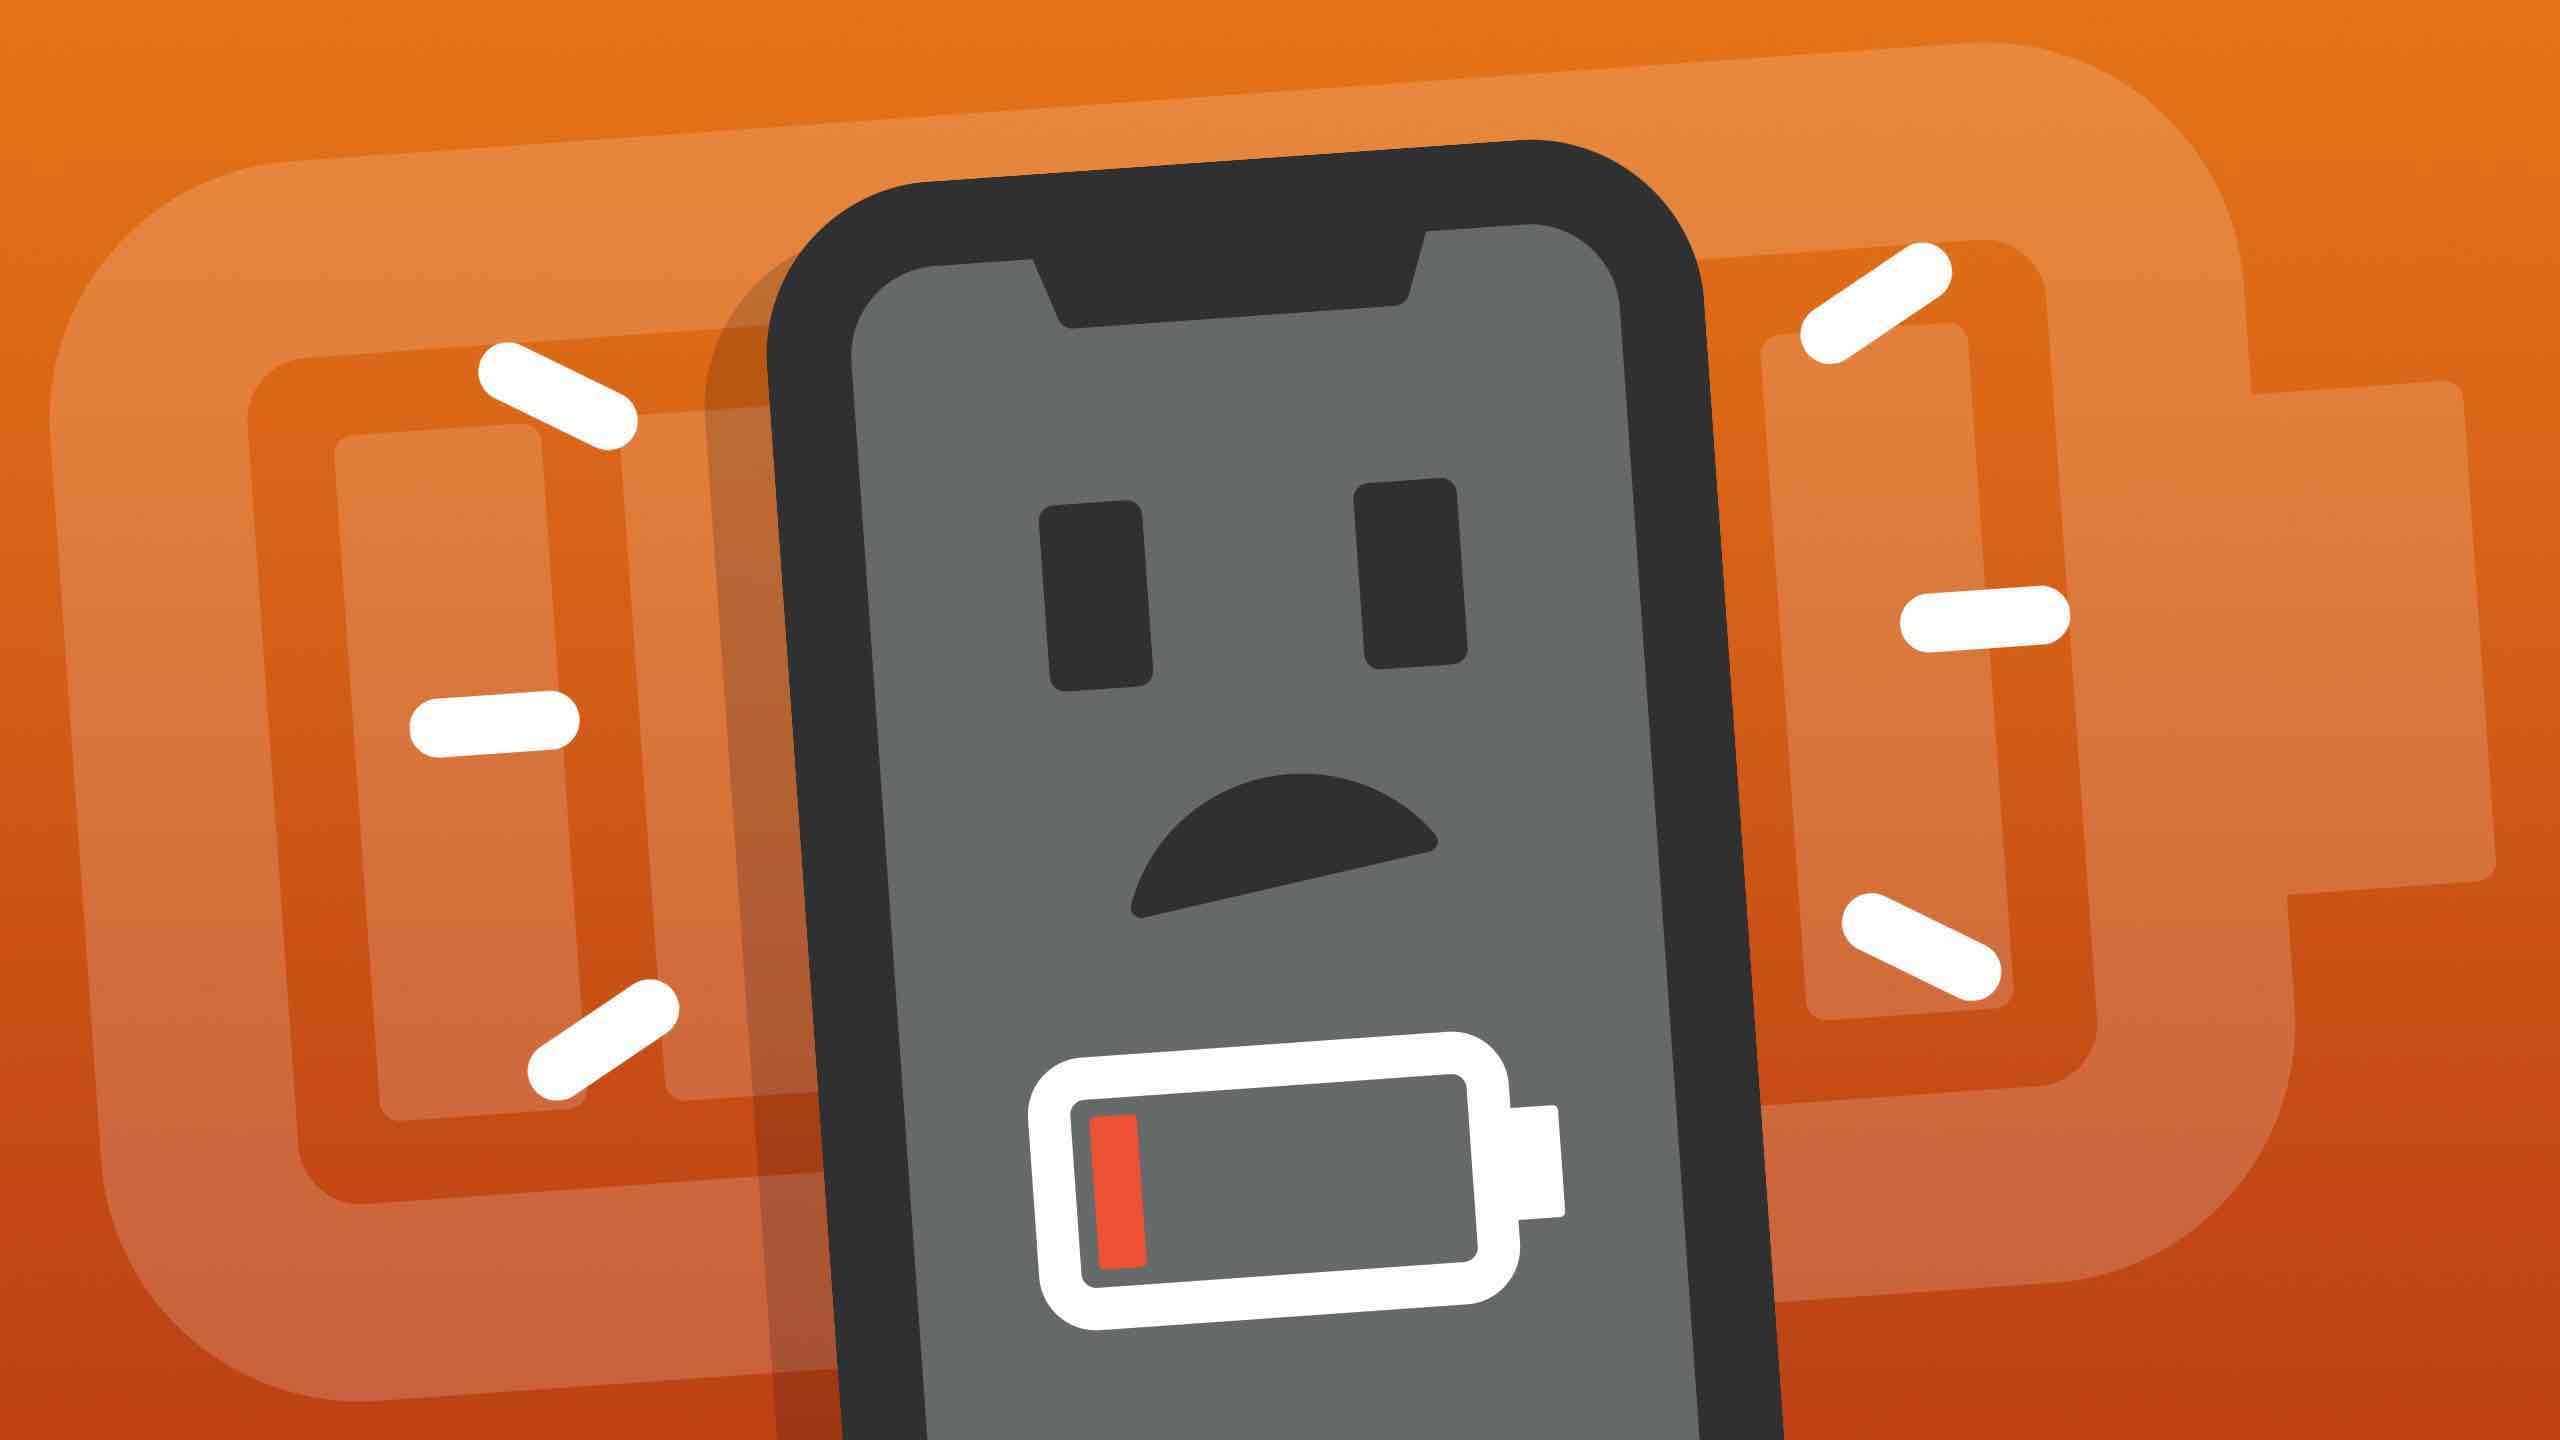 Check which apps are draining your battery fast on Android